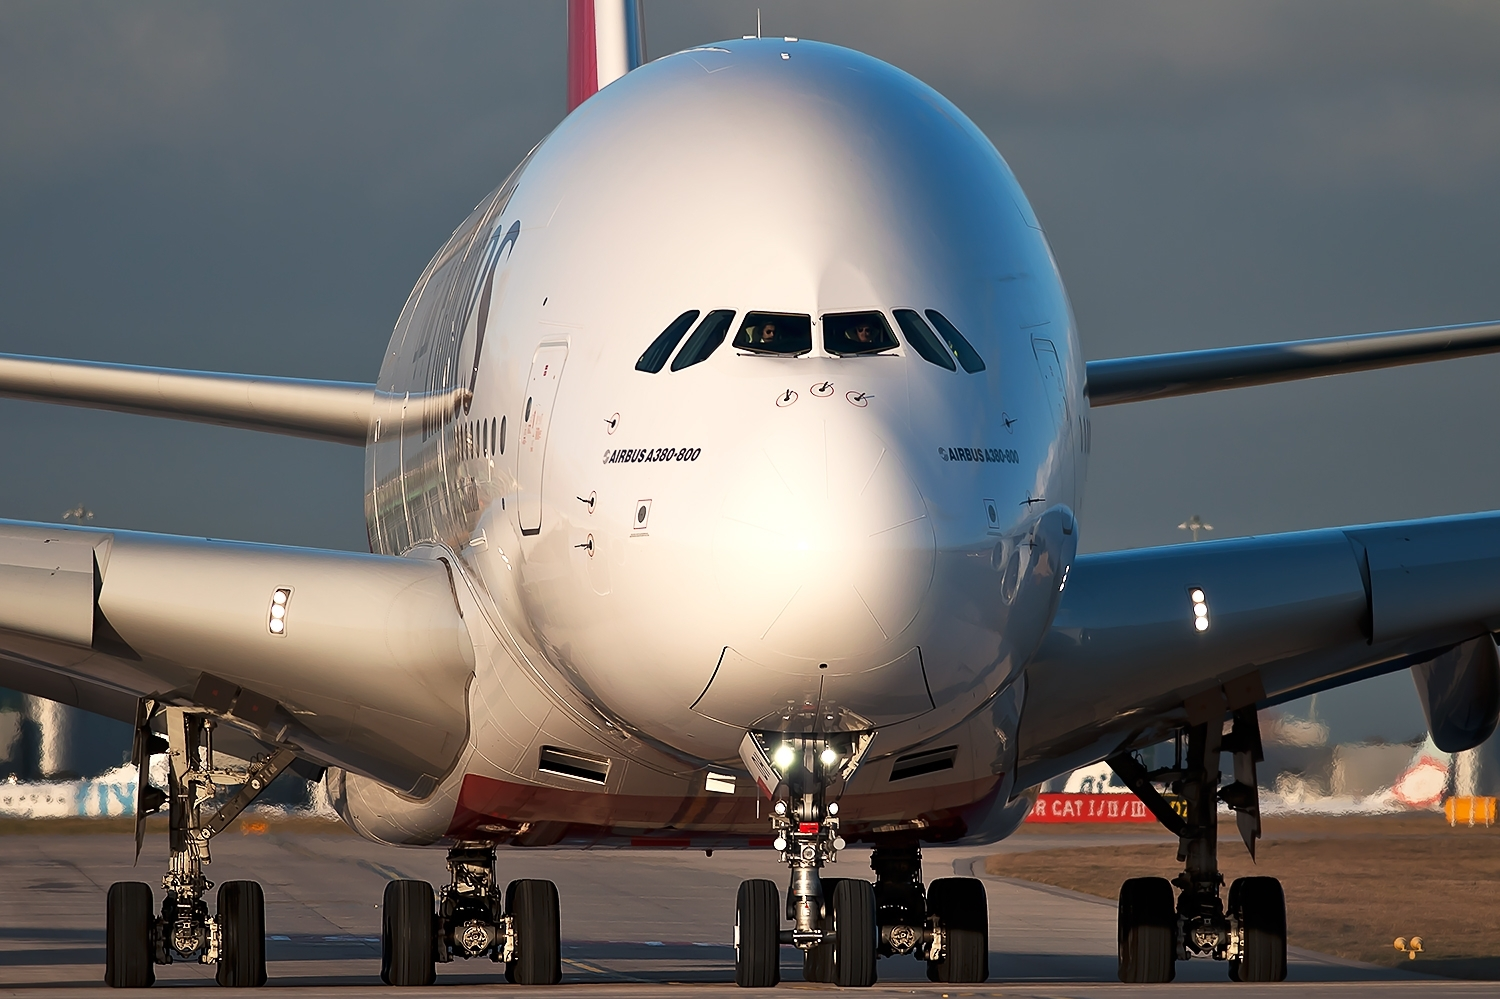 Airbus A380 800 of Emirates While Taxiing Aircraft Wallpaper 2756 1500x999